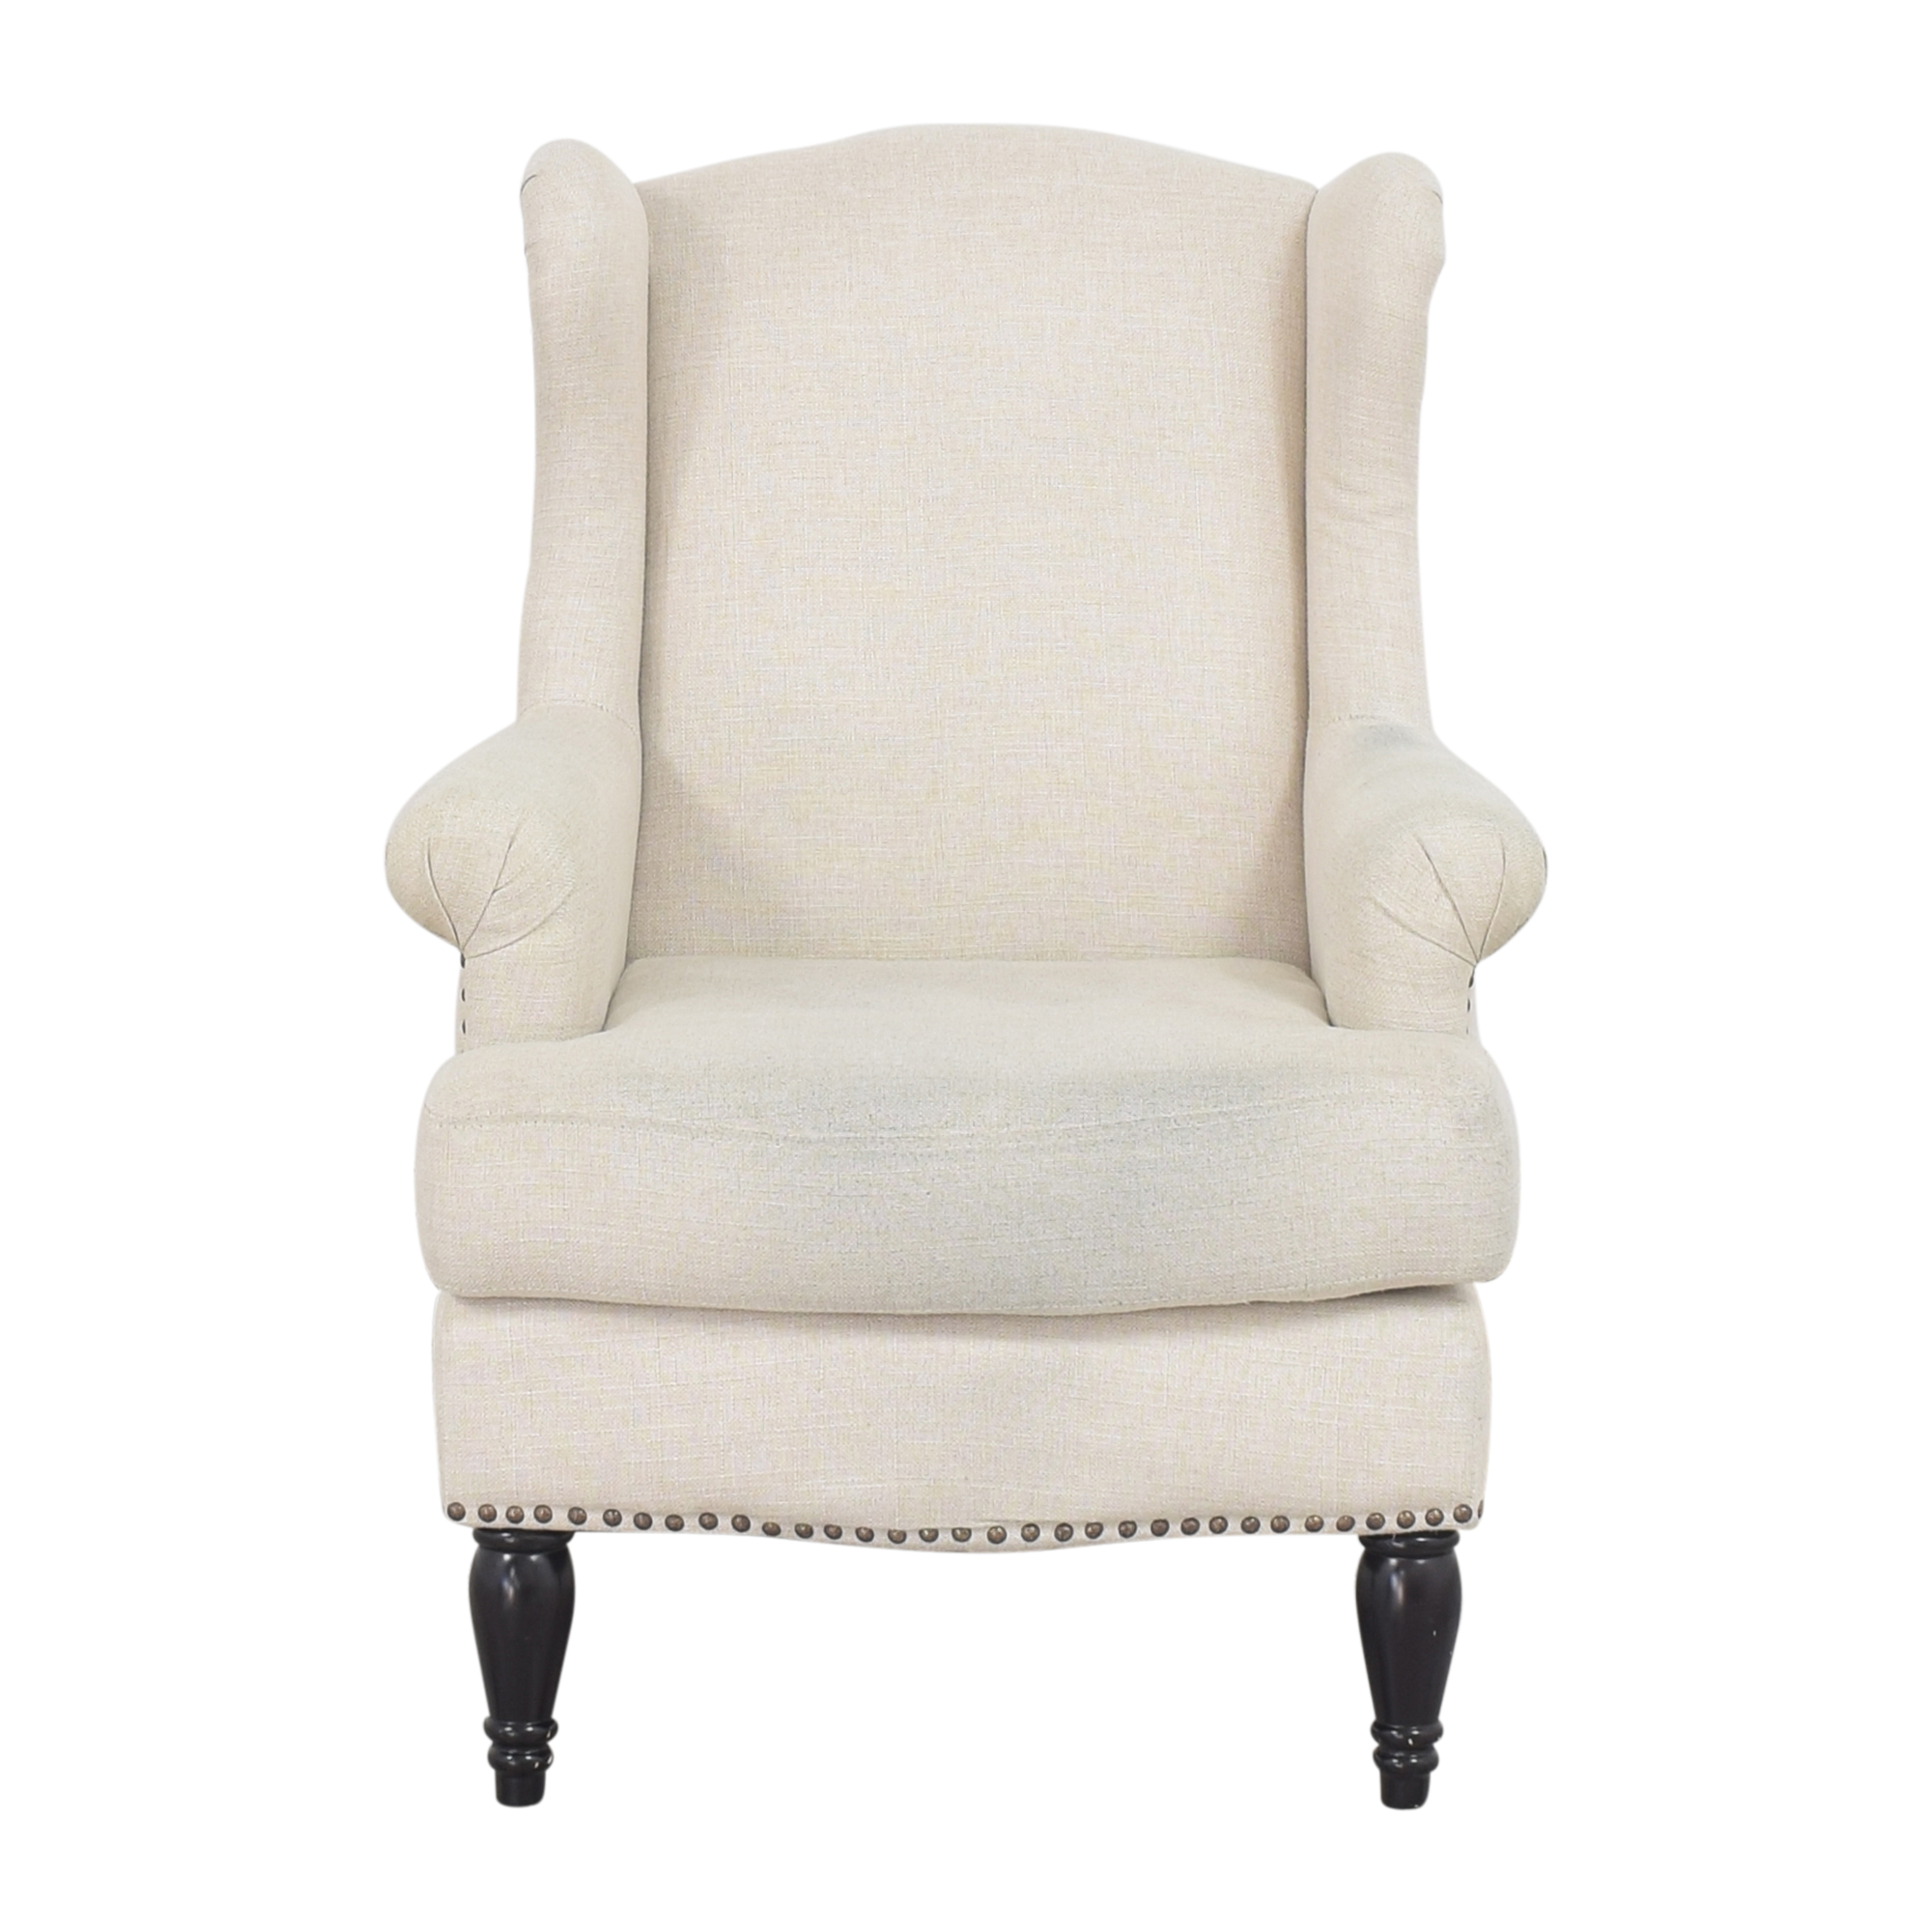 Pottery Barn Pottery Barn Delancey Petite Upholstered Wingback Armchair ct